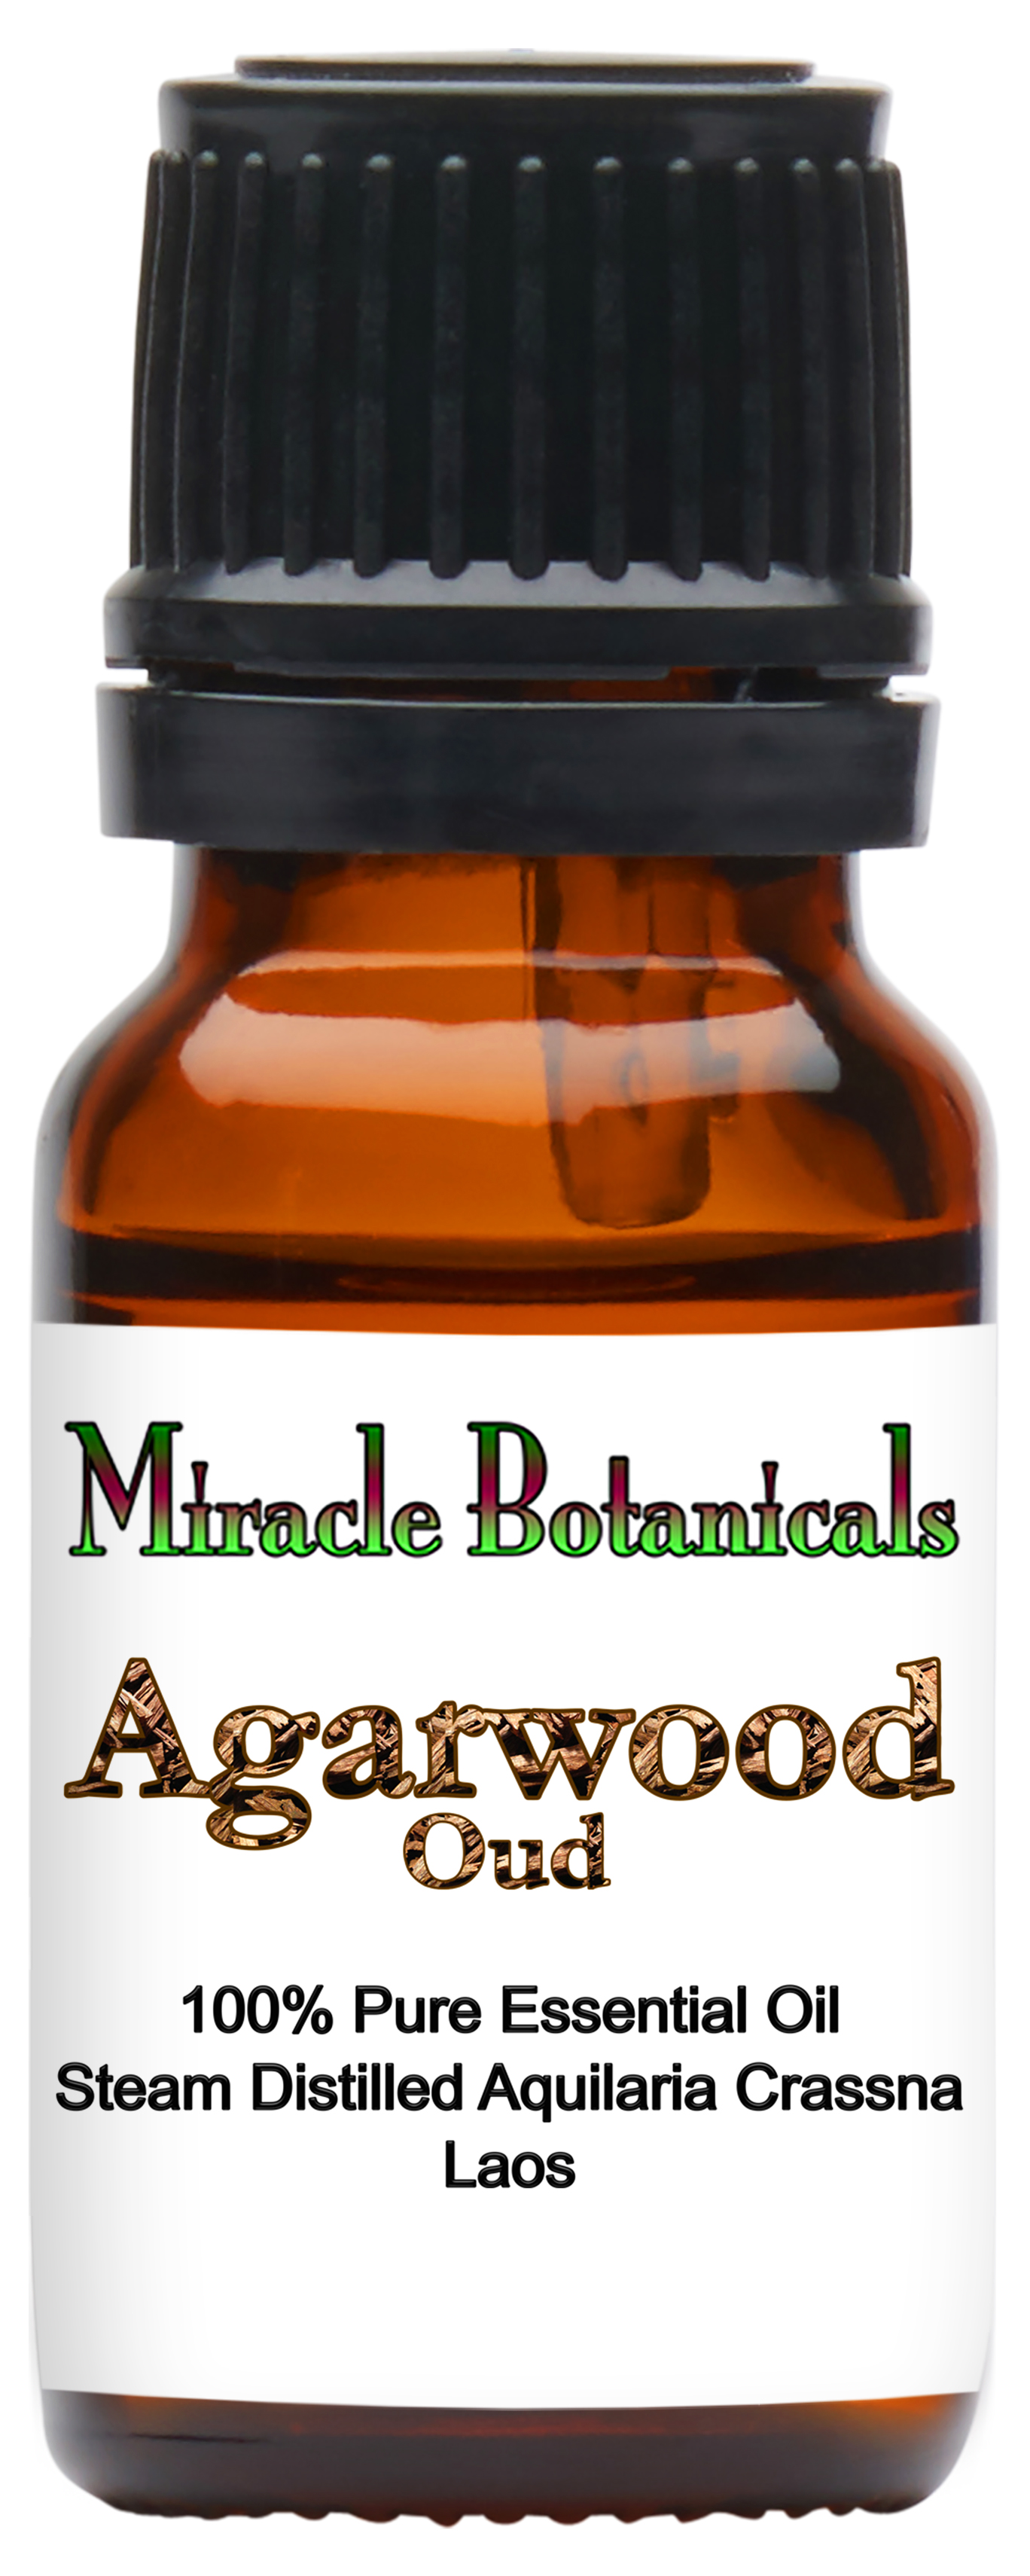 Oud or Agarwood oil